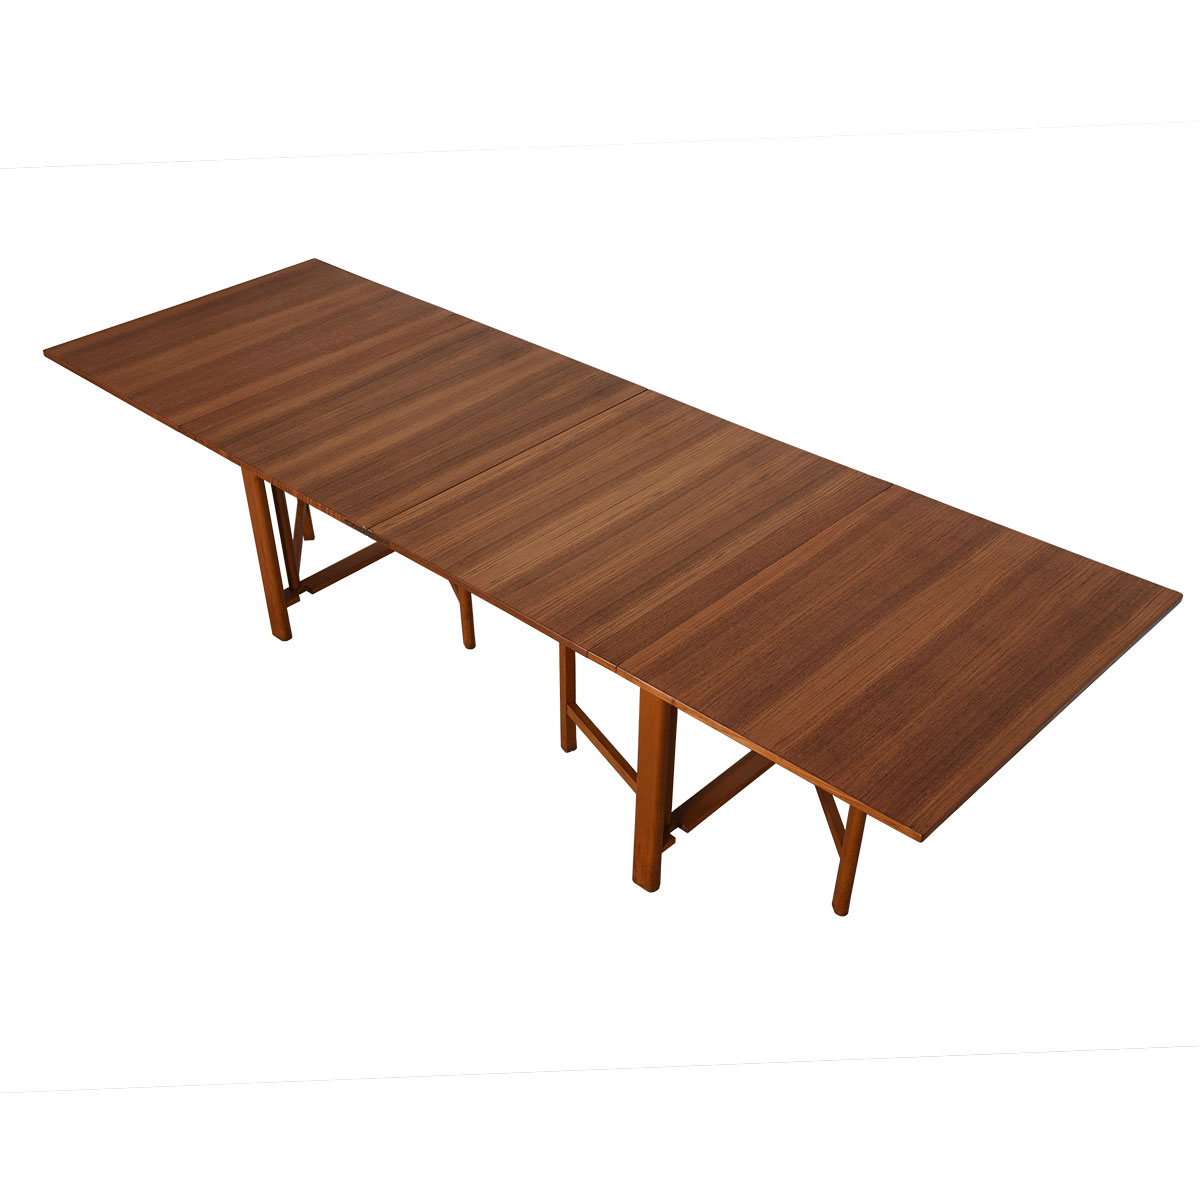 Iconic Super Expanding 'Maria Flap' Table in Teak by Bruno Mathsson, Sweden